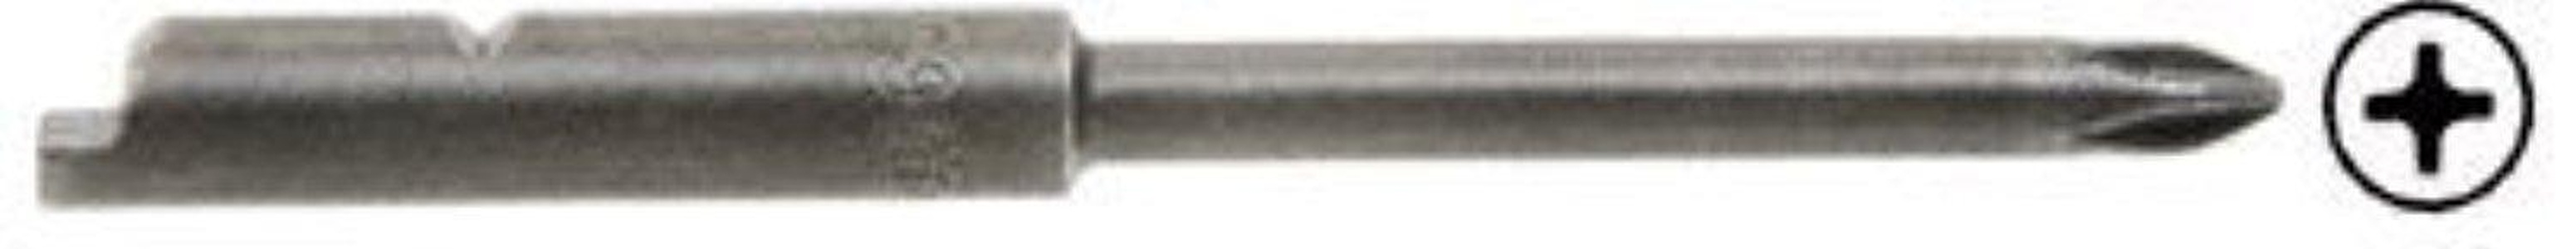 CRL Door Glass Channel Chisel - 476 by CRL